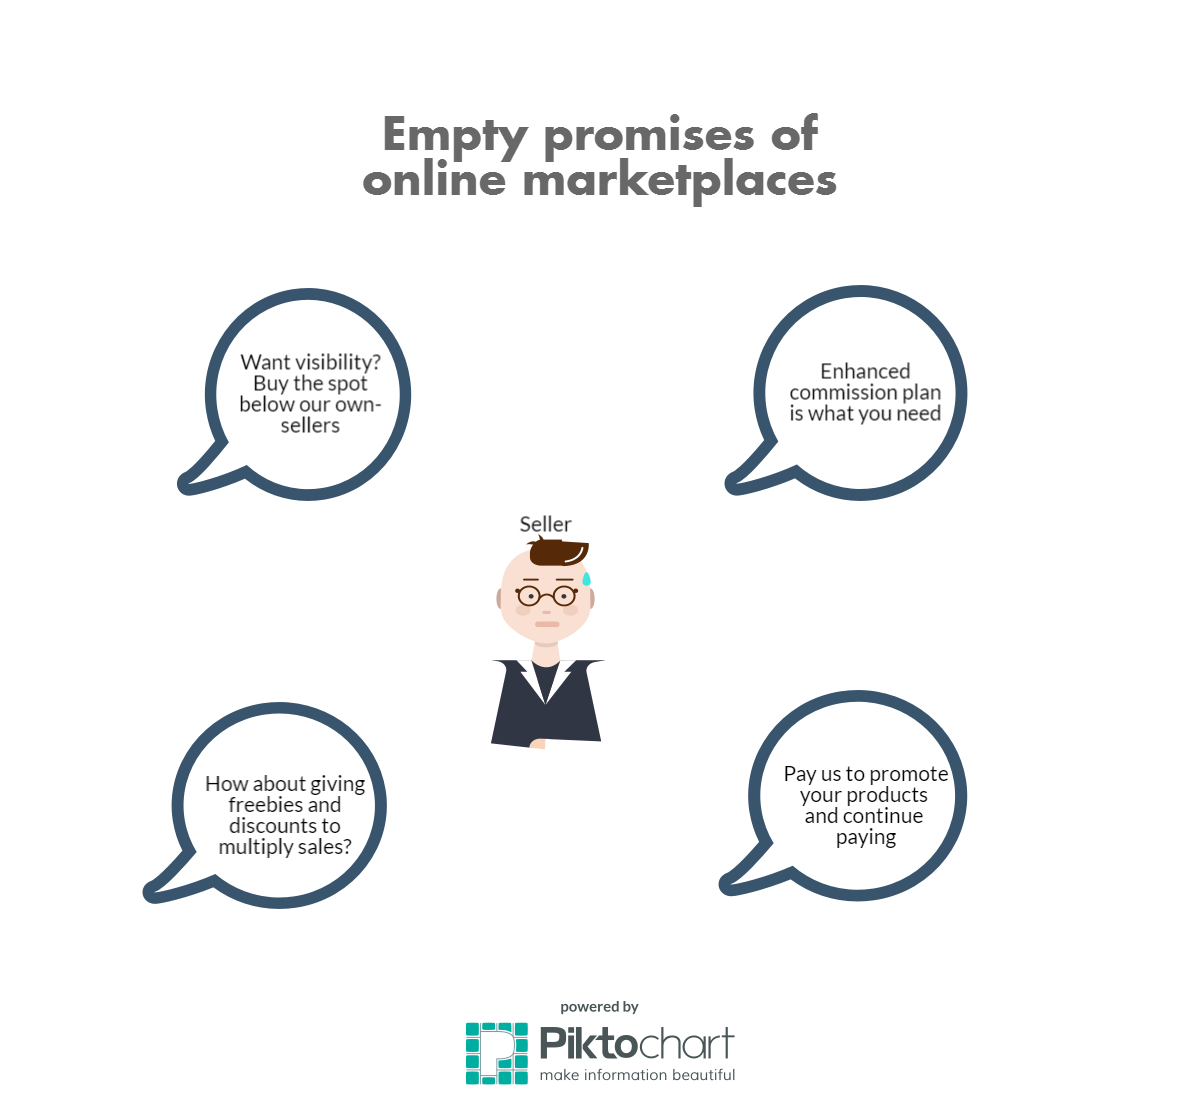 Marketplaces' empty promises